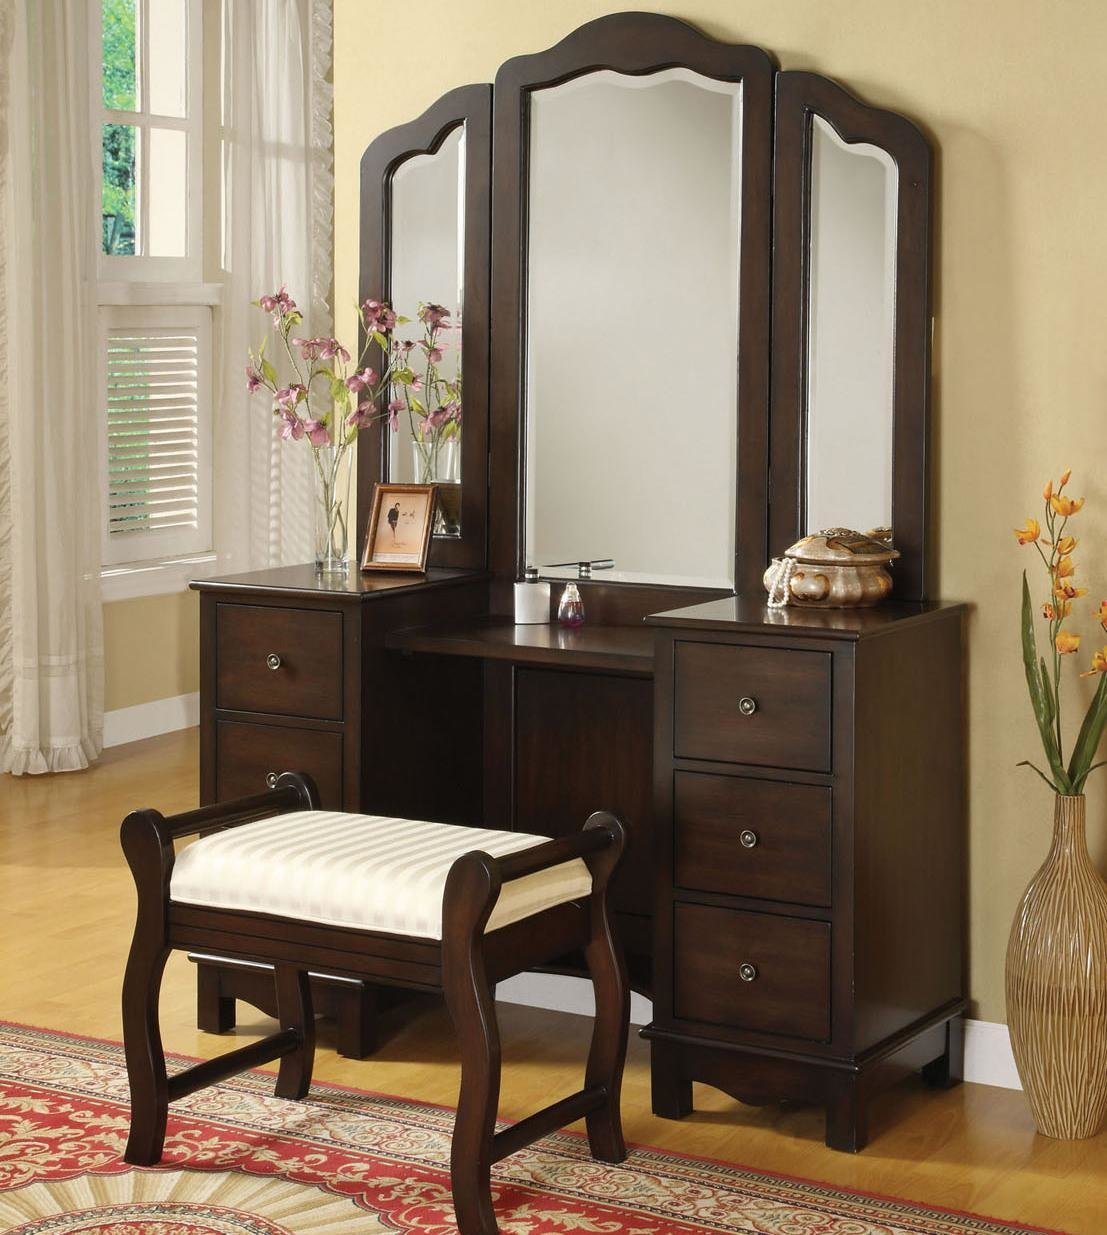 Best Acme Furniture Annapolis Vanity Set With Upholstered Stool Del Sol Furniture Vanity With Pictures